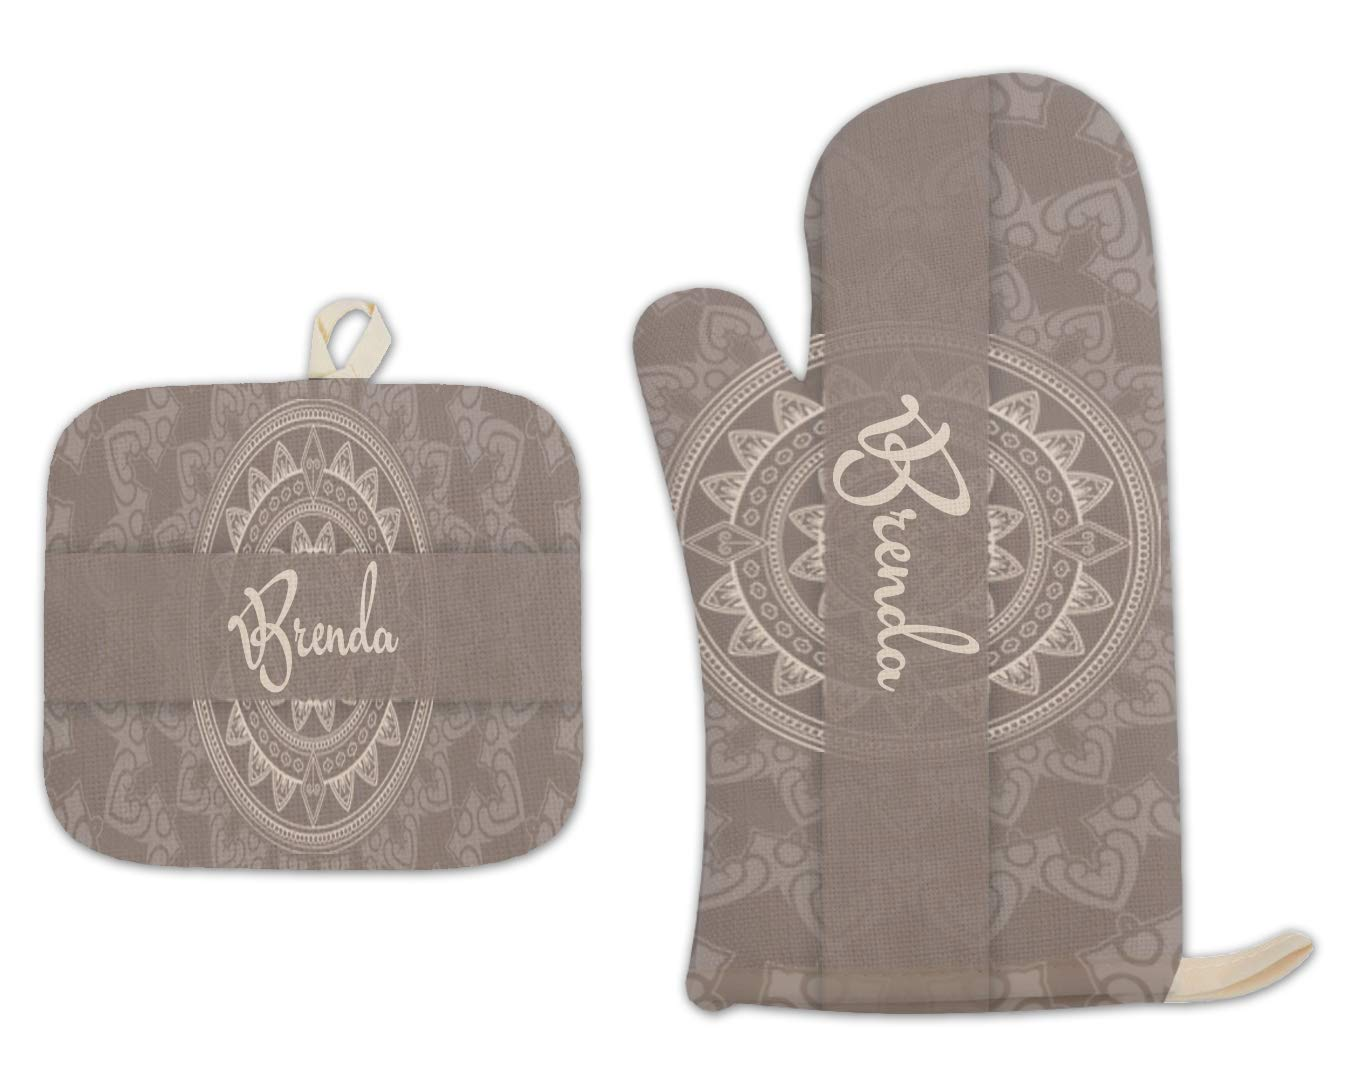 Bleu Reign BRGiftShop Personalized Custom Name Damask Natural Brown and Cream Print Linen Oven Mitt and Potholder Set